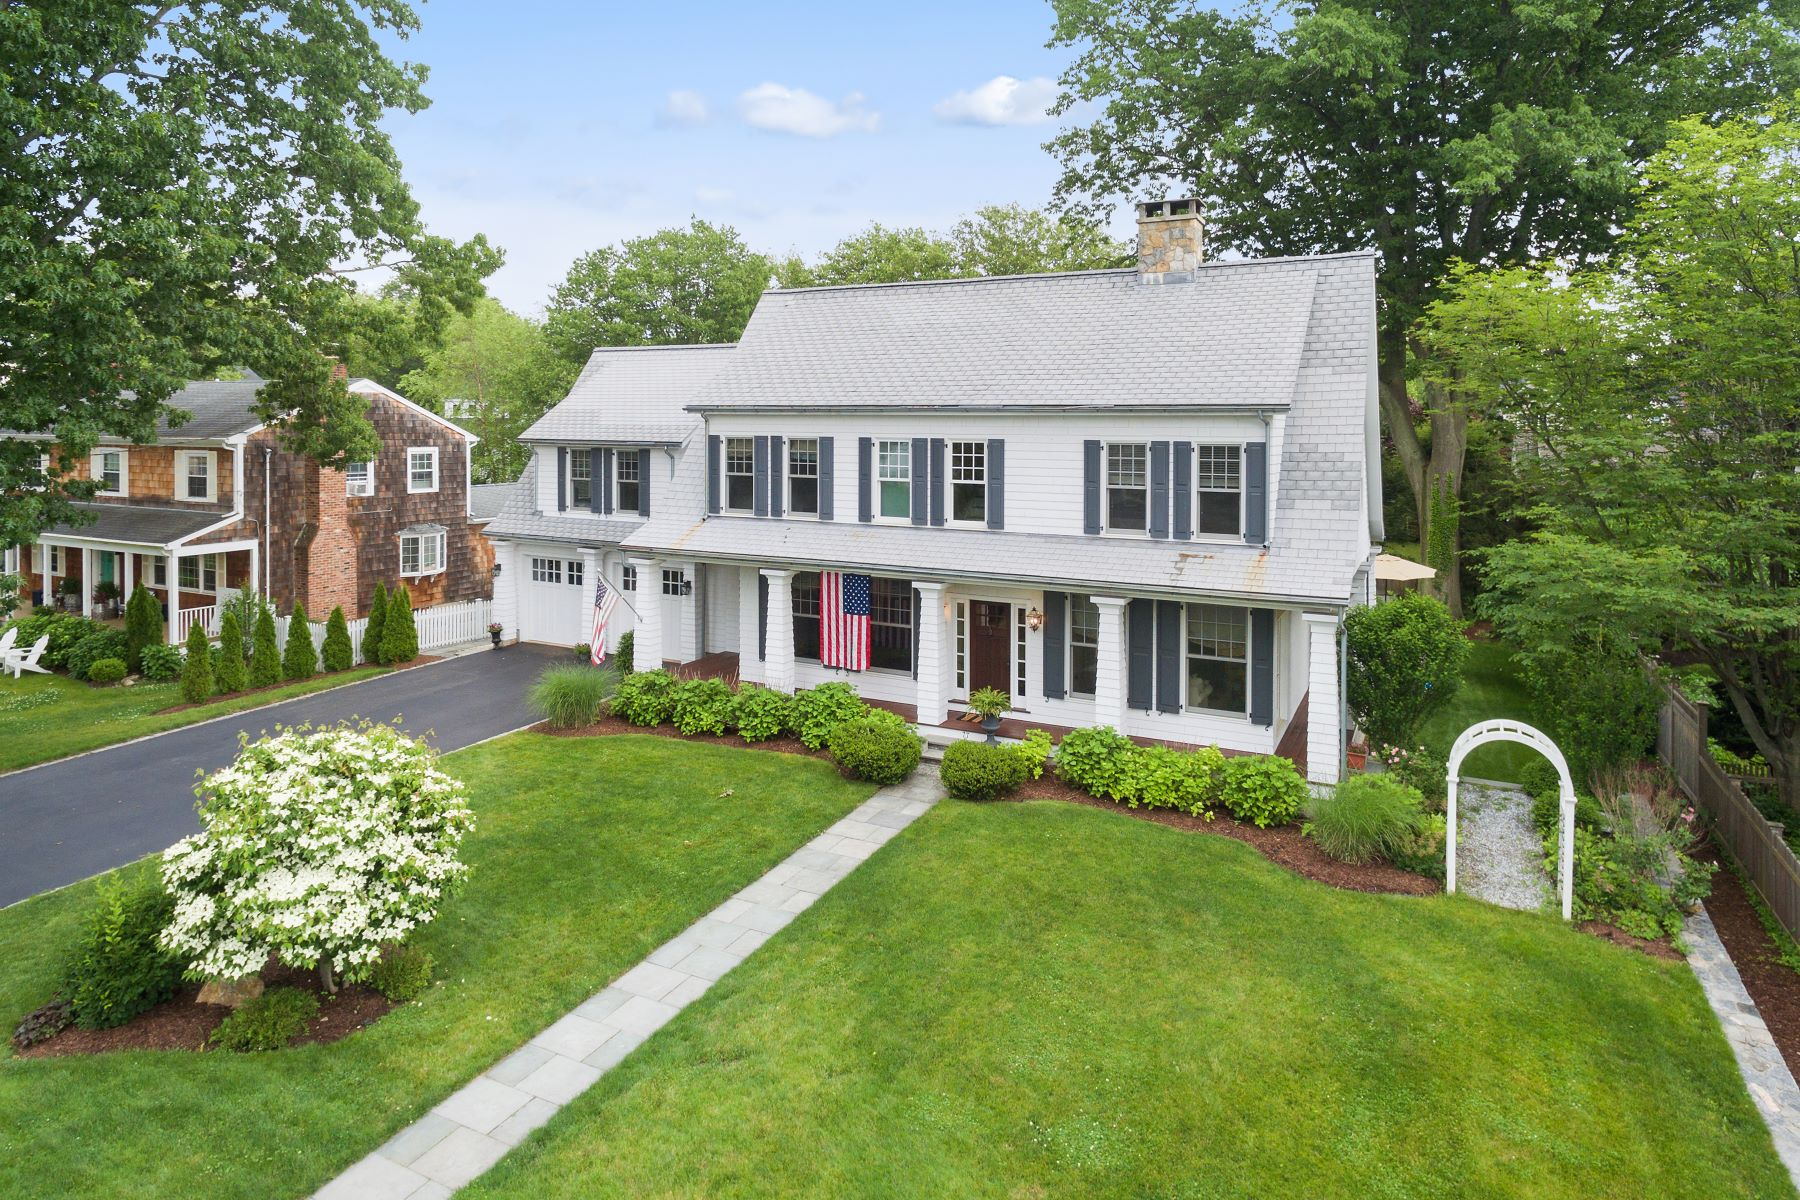 Single Family Homes for Sale at Beach Area Classic 77 Fern Street Fairfield, Connecticut 06824 United States